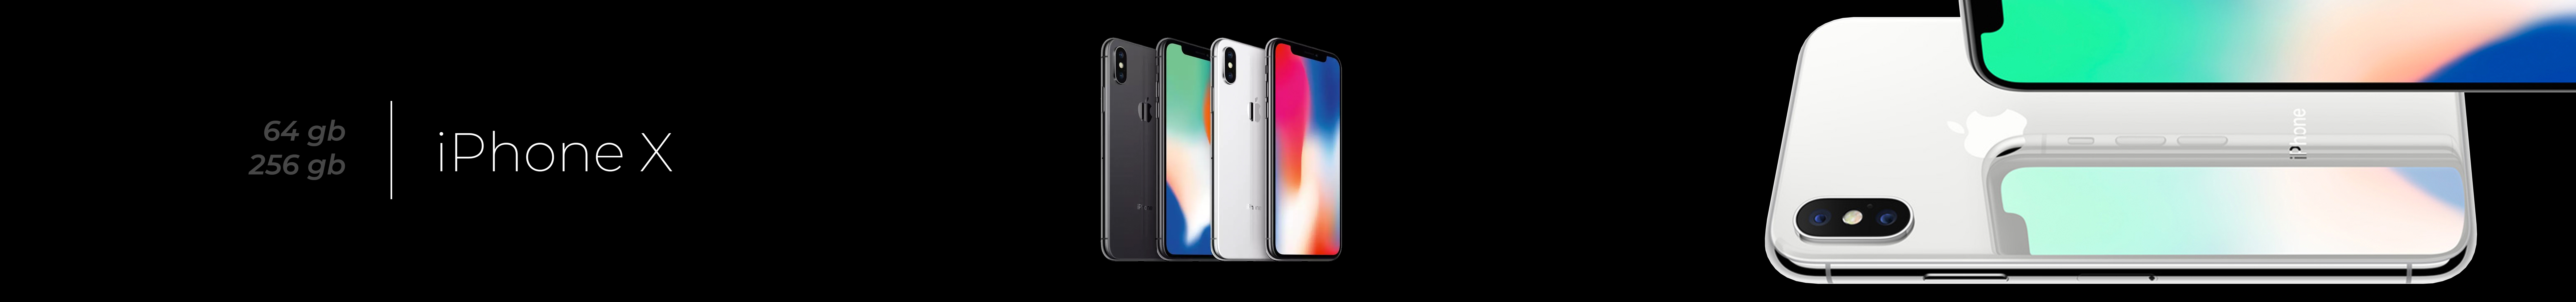 iPhone X Open Box Mobile